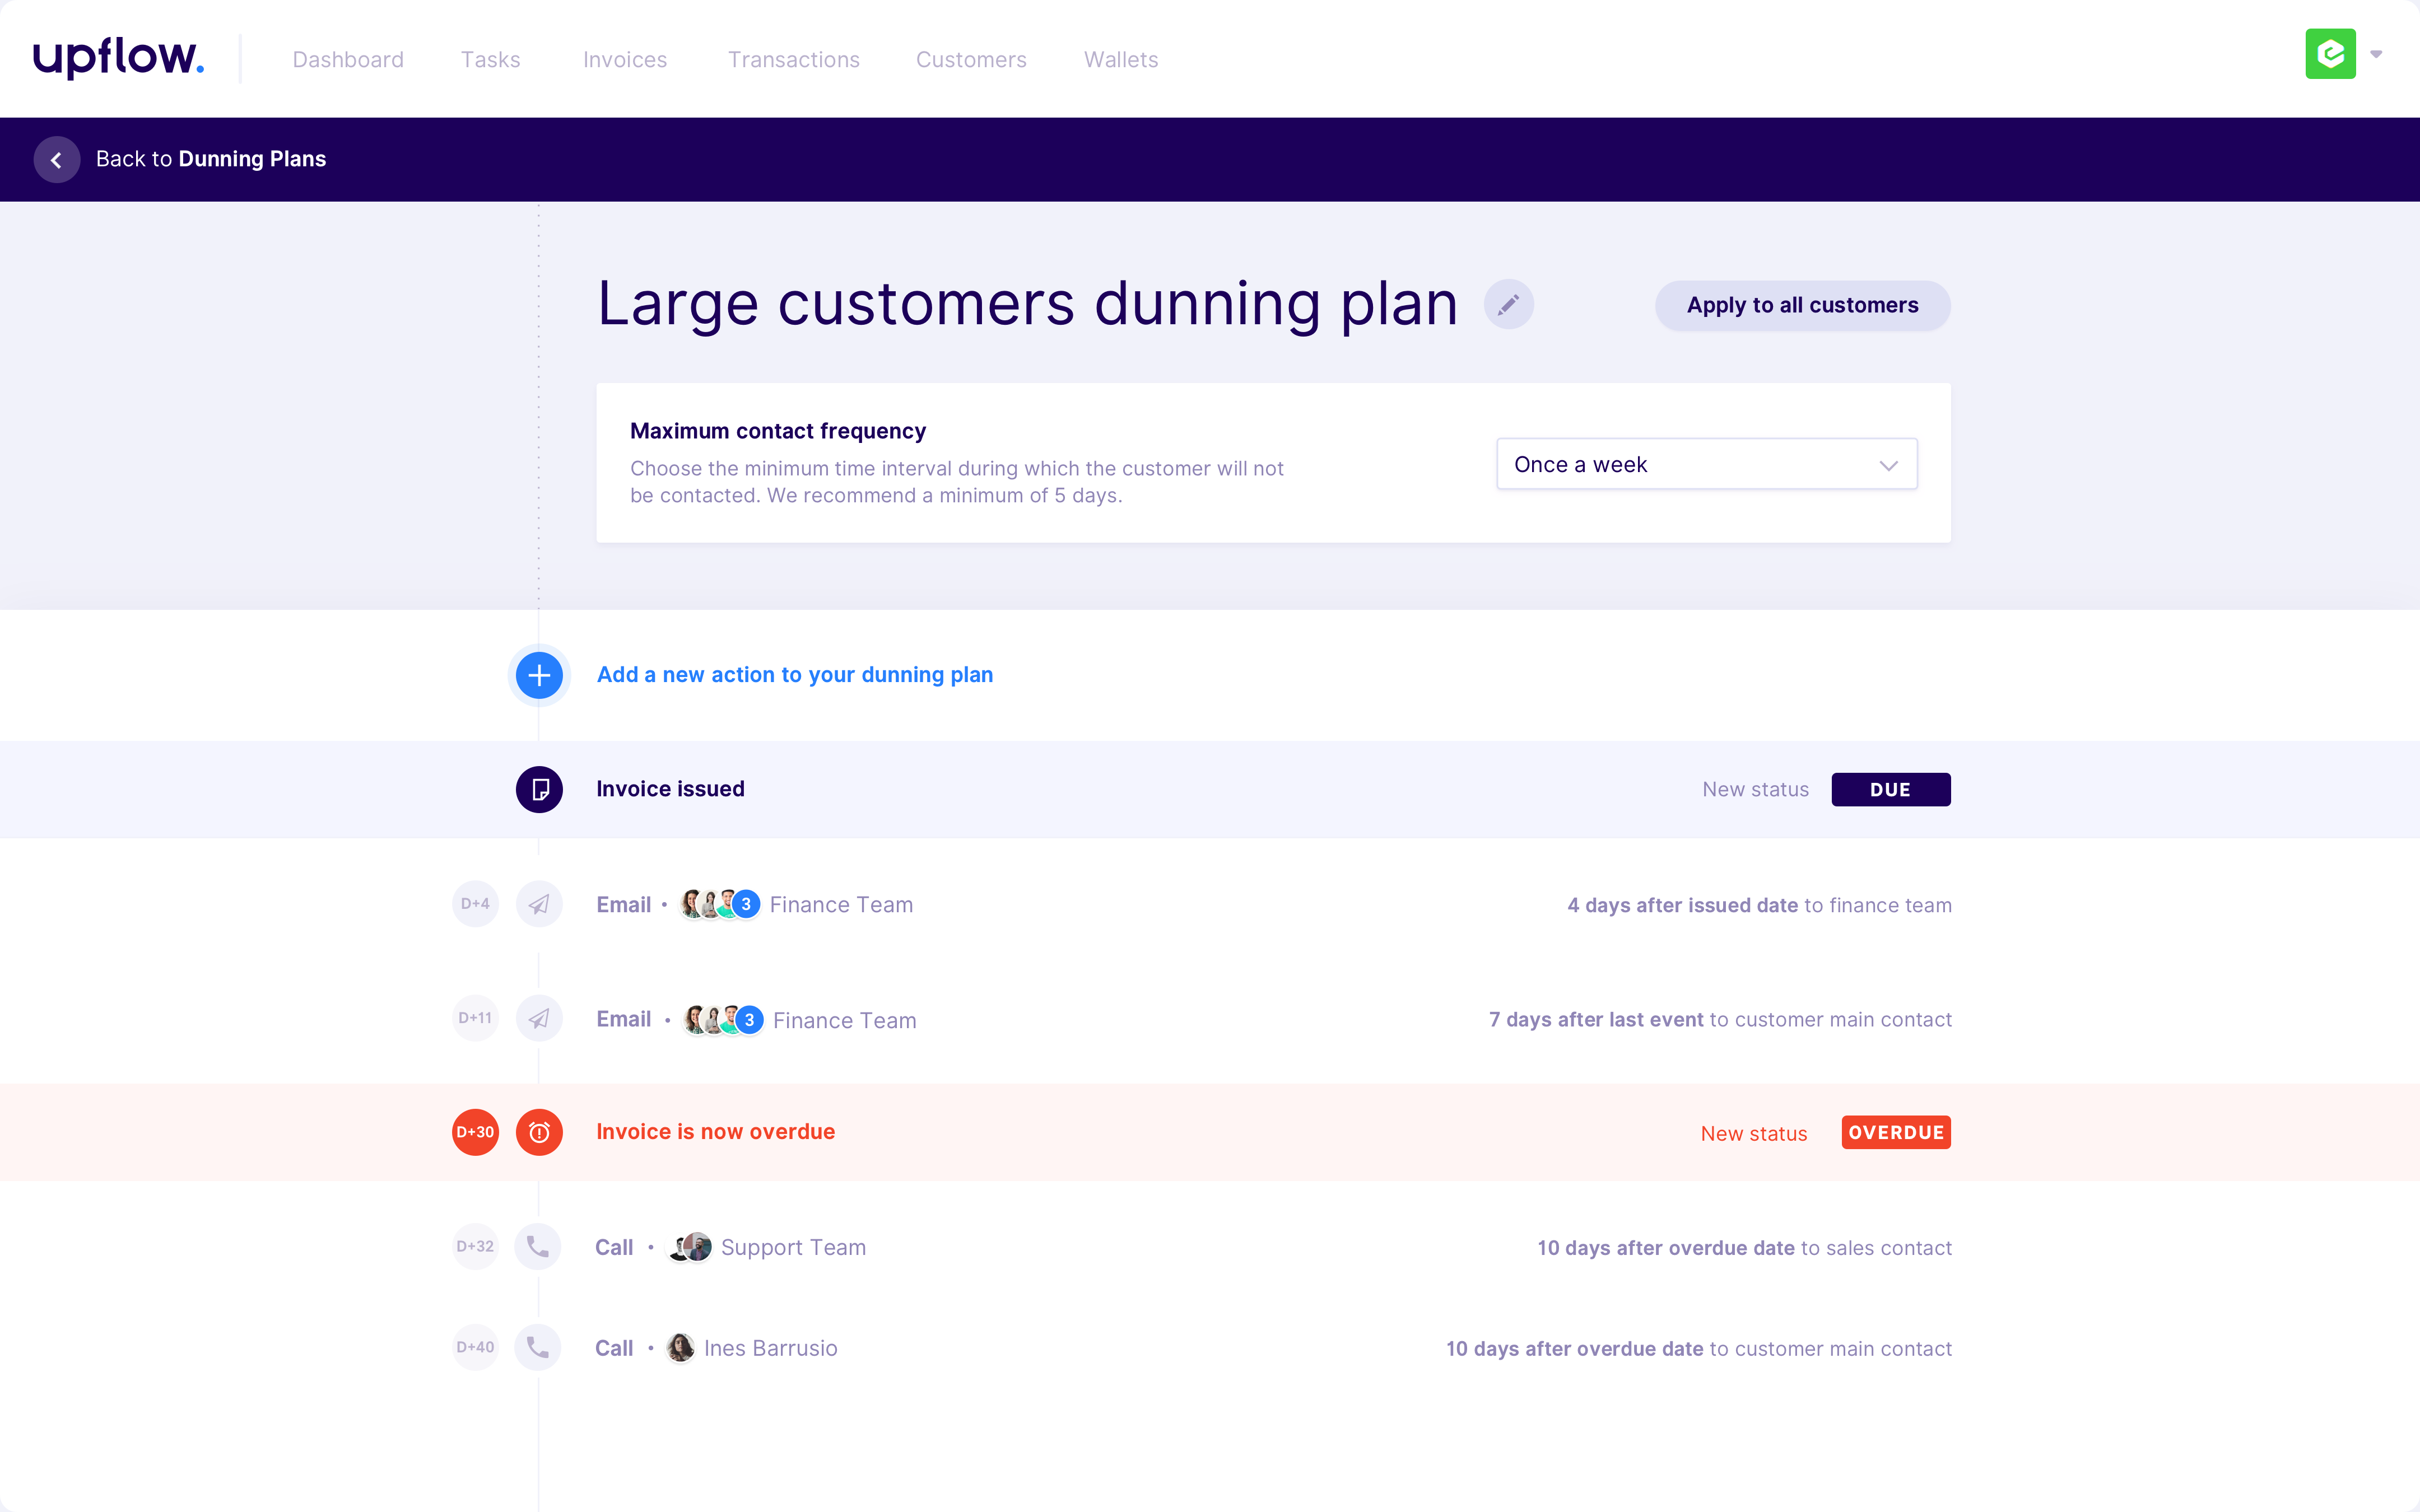 Upflow turbocharges your invoices Upflow     Dunning Setting Hover Edit 3x